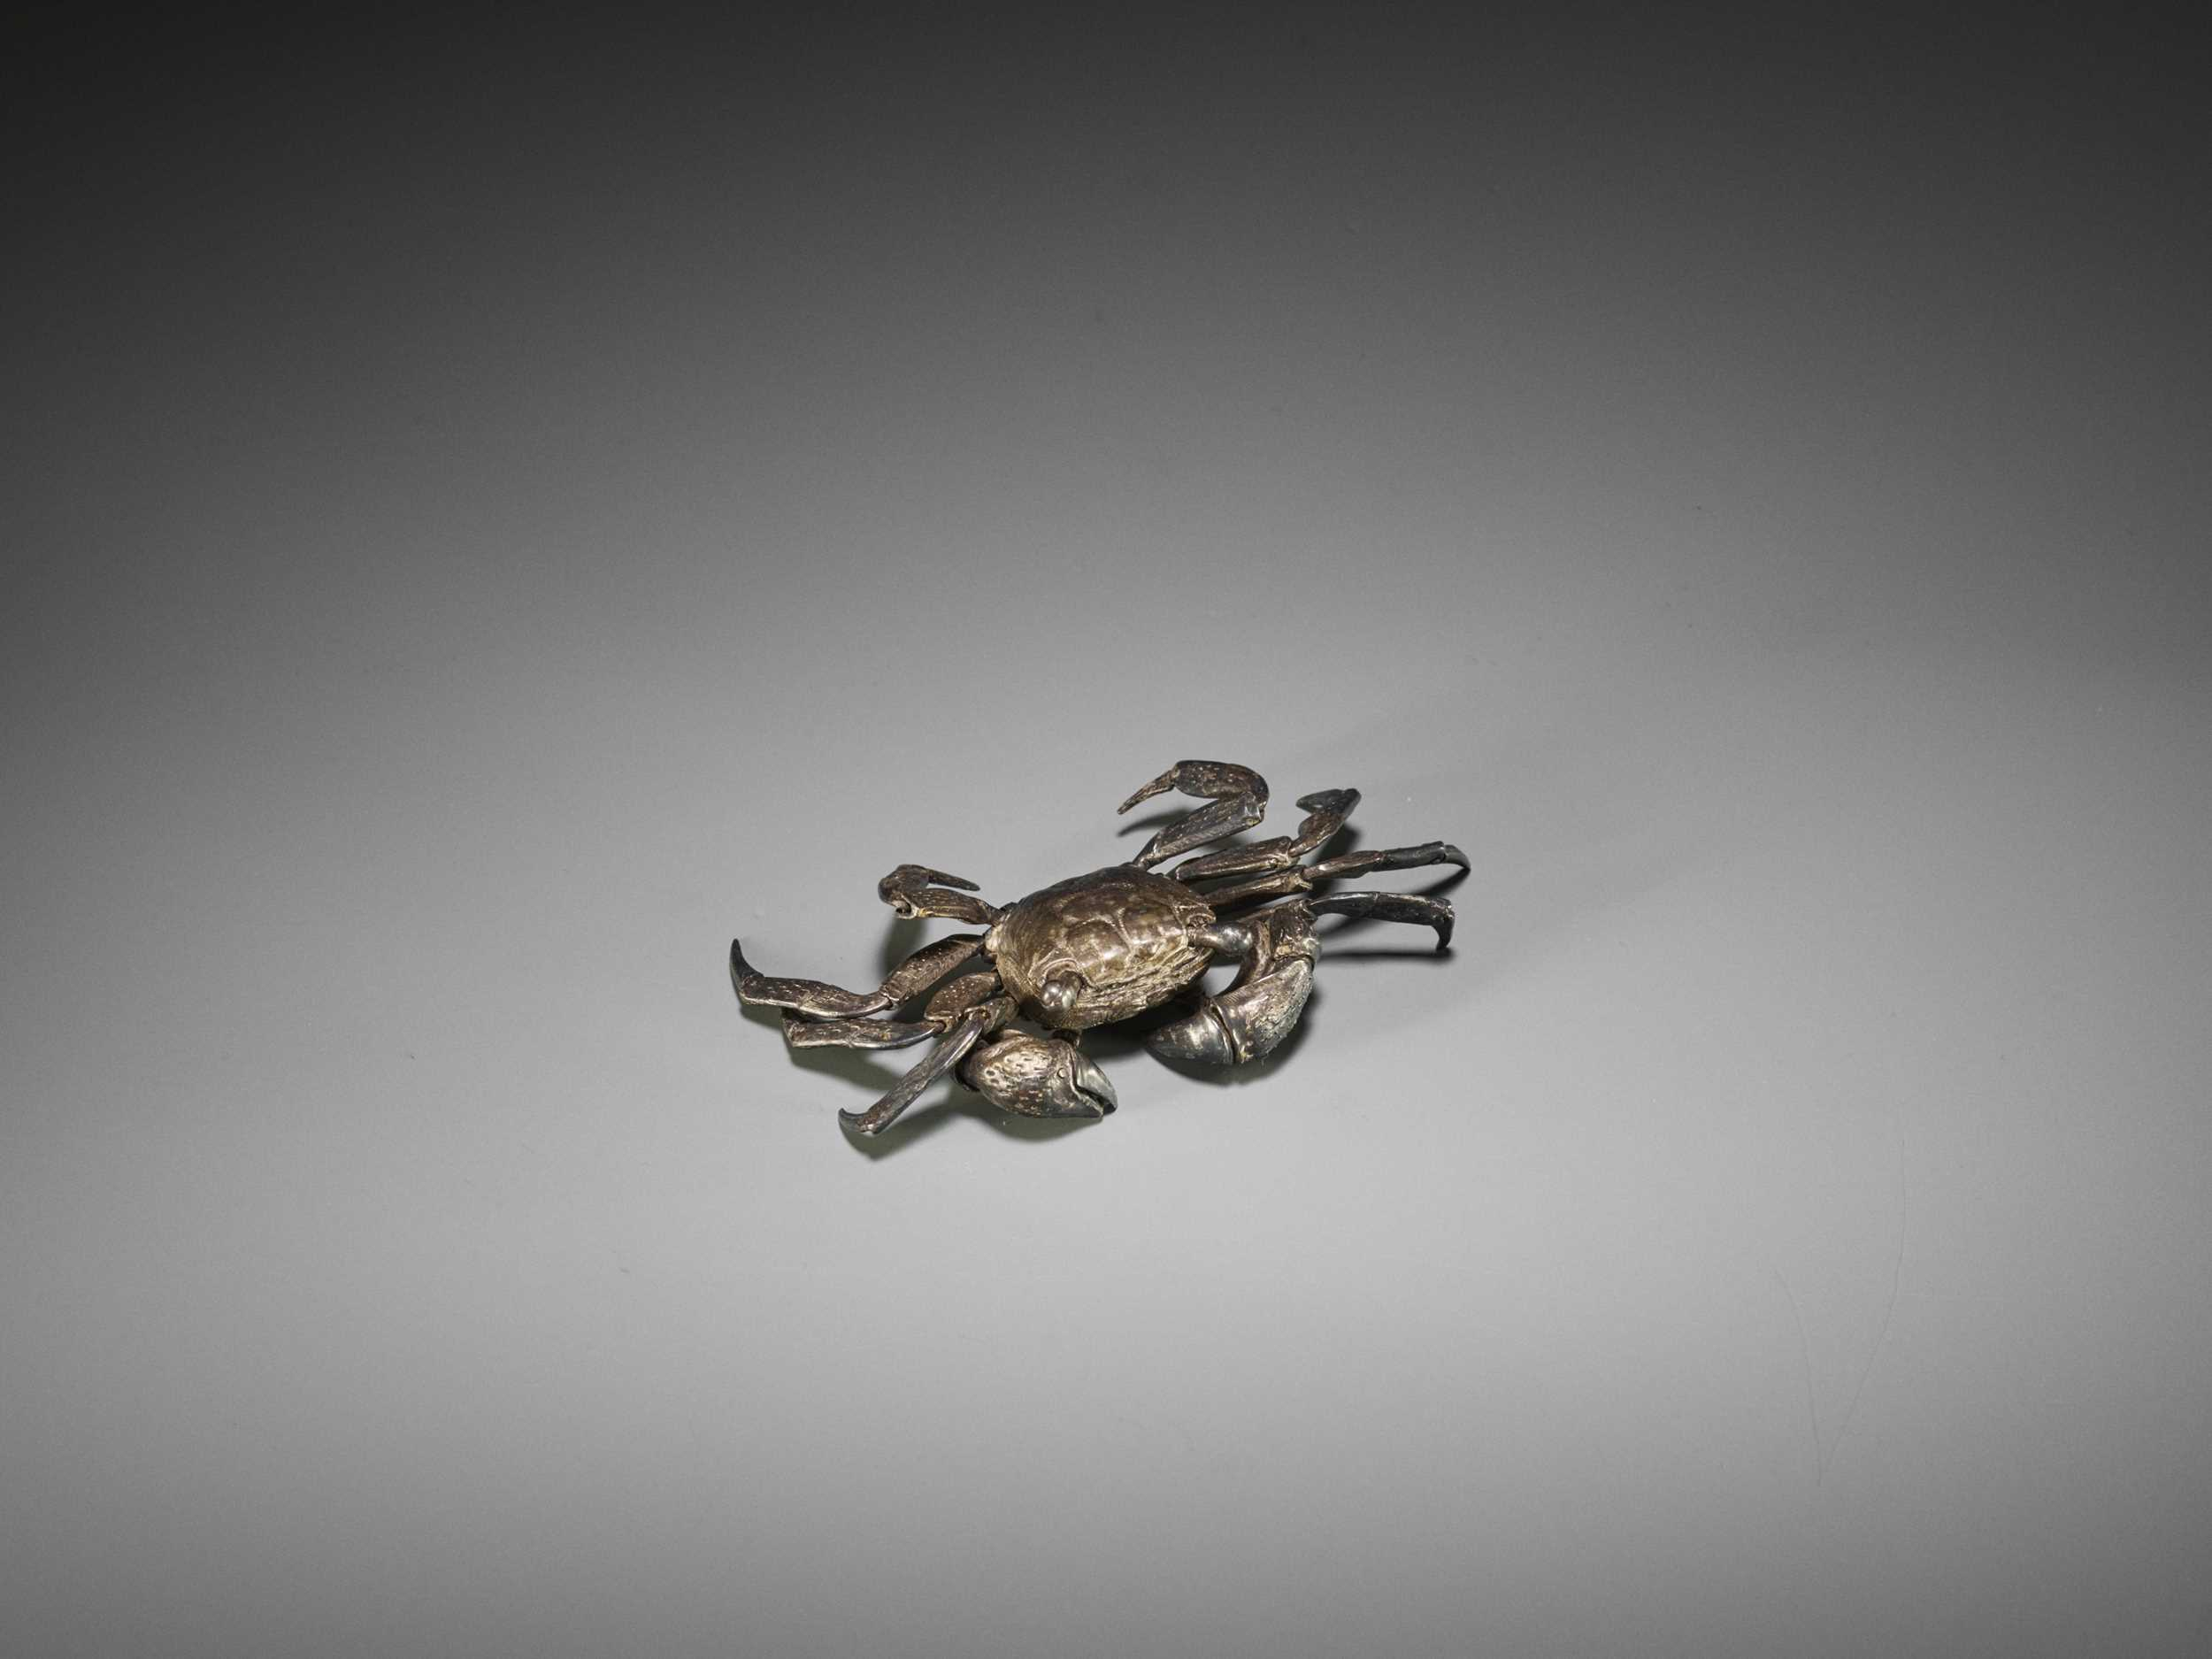 Lot 14 - A FINE SILVERED BRONZE OKIMONO OF A FULLY ARTICULATED CRAB